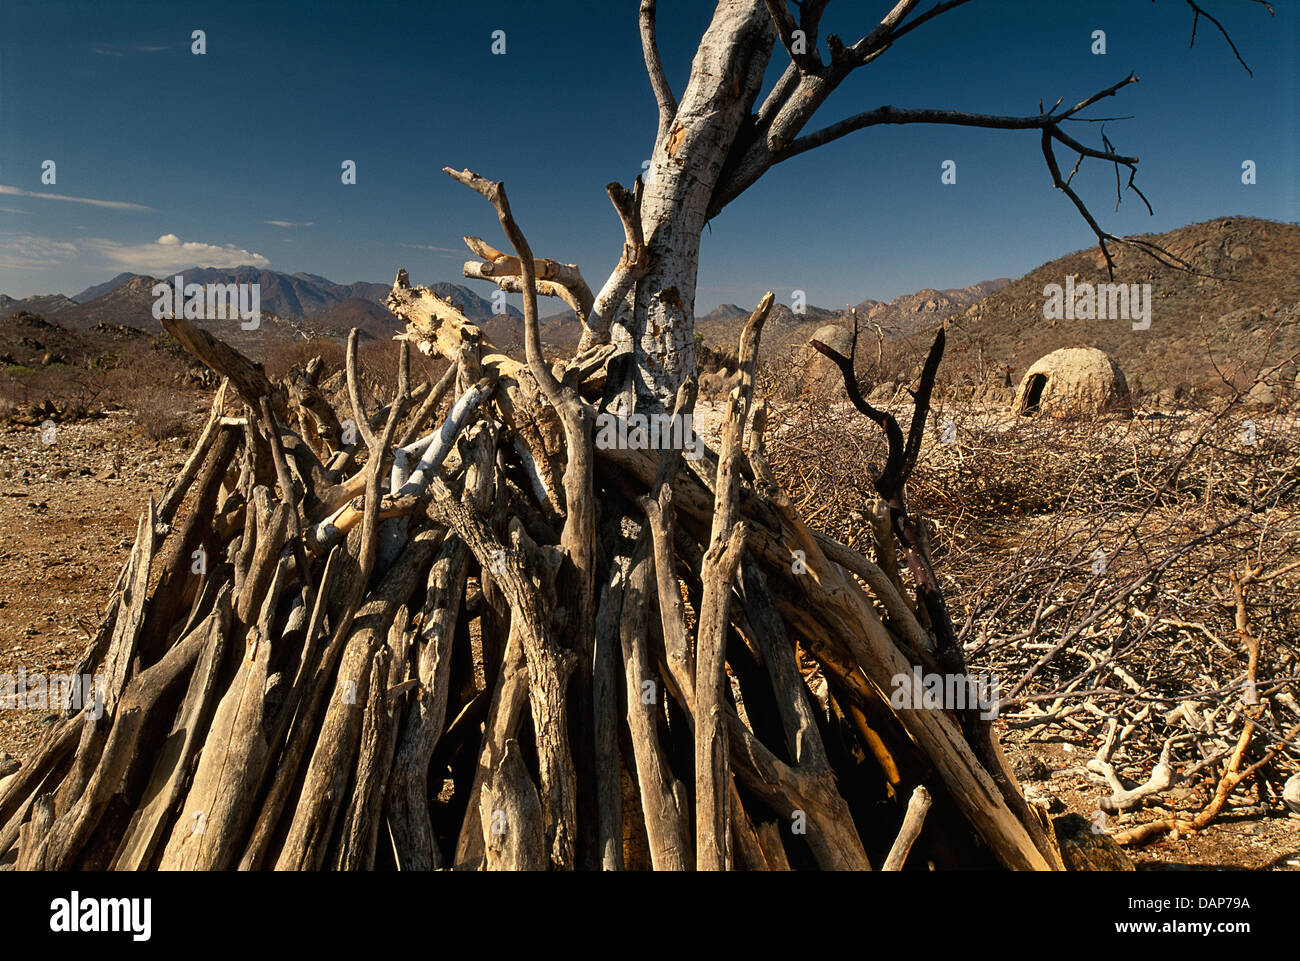 Stacked branches of Himba hut in Angola. Stock Photo